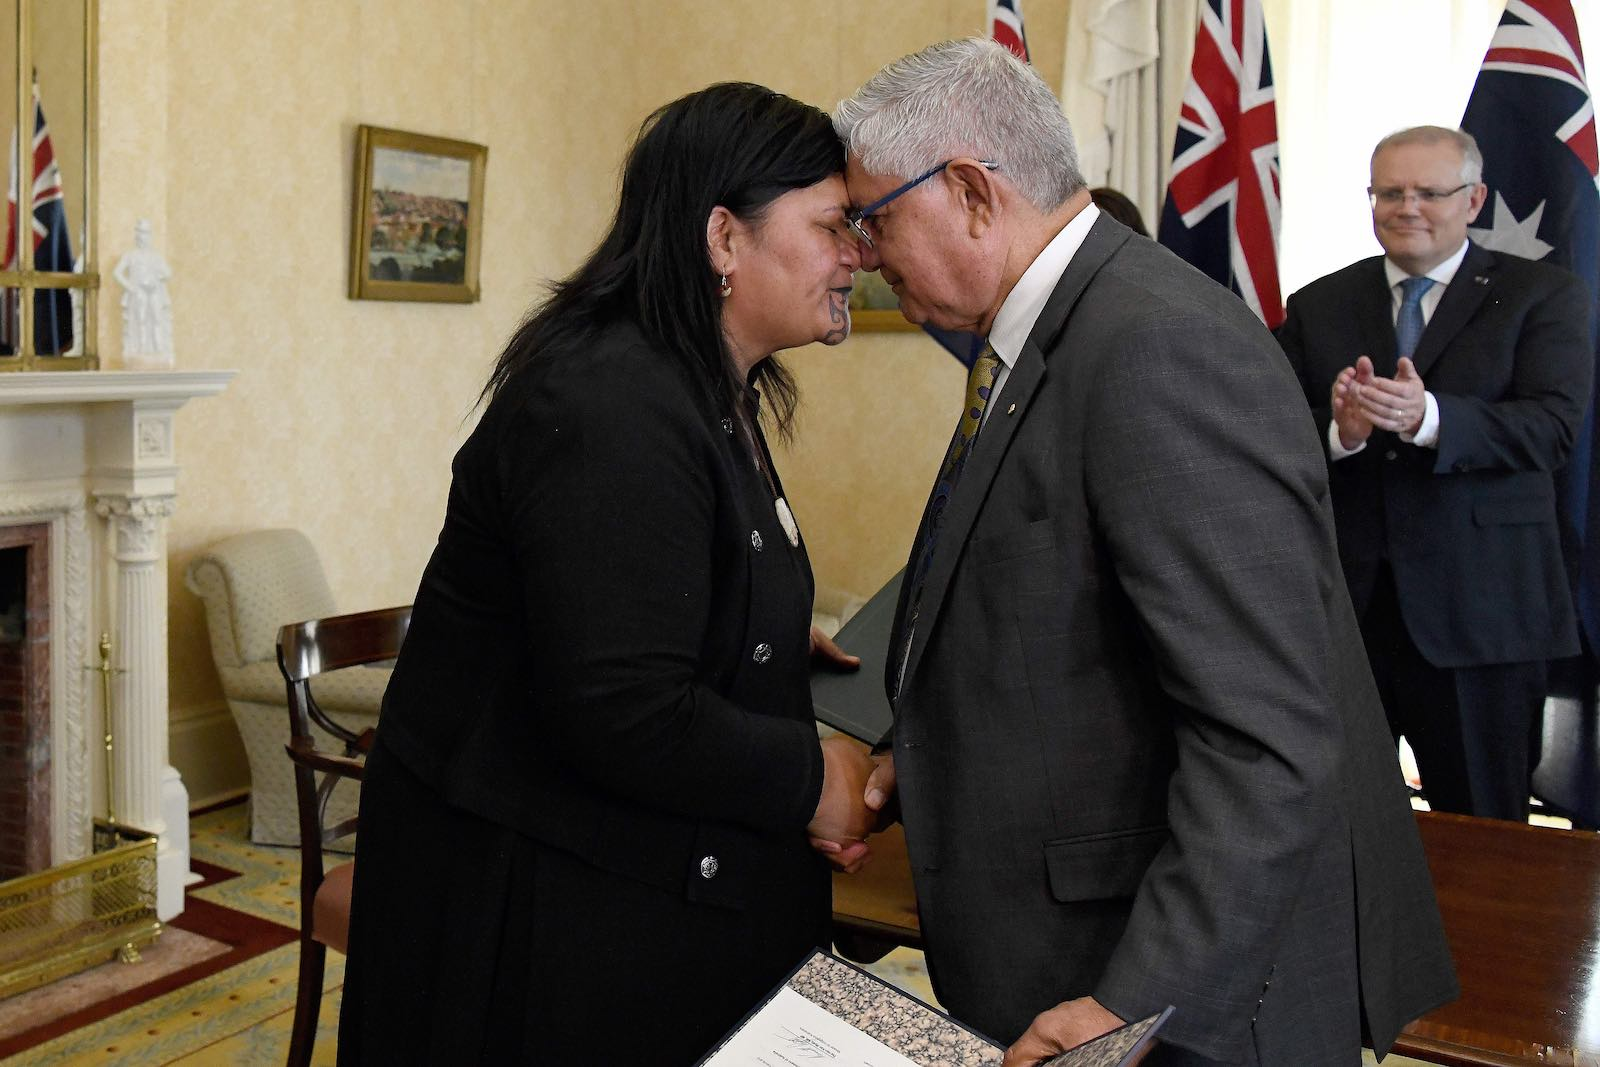 New Zealand's Nanaia Mahuta, before becoming Foreign Minister, on a trip to Australia in February 2020 greeting Minister for Indigenous Australians Ken Wyatt (Bianca De Marchi/AFP via Getty Images)